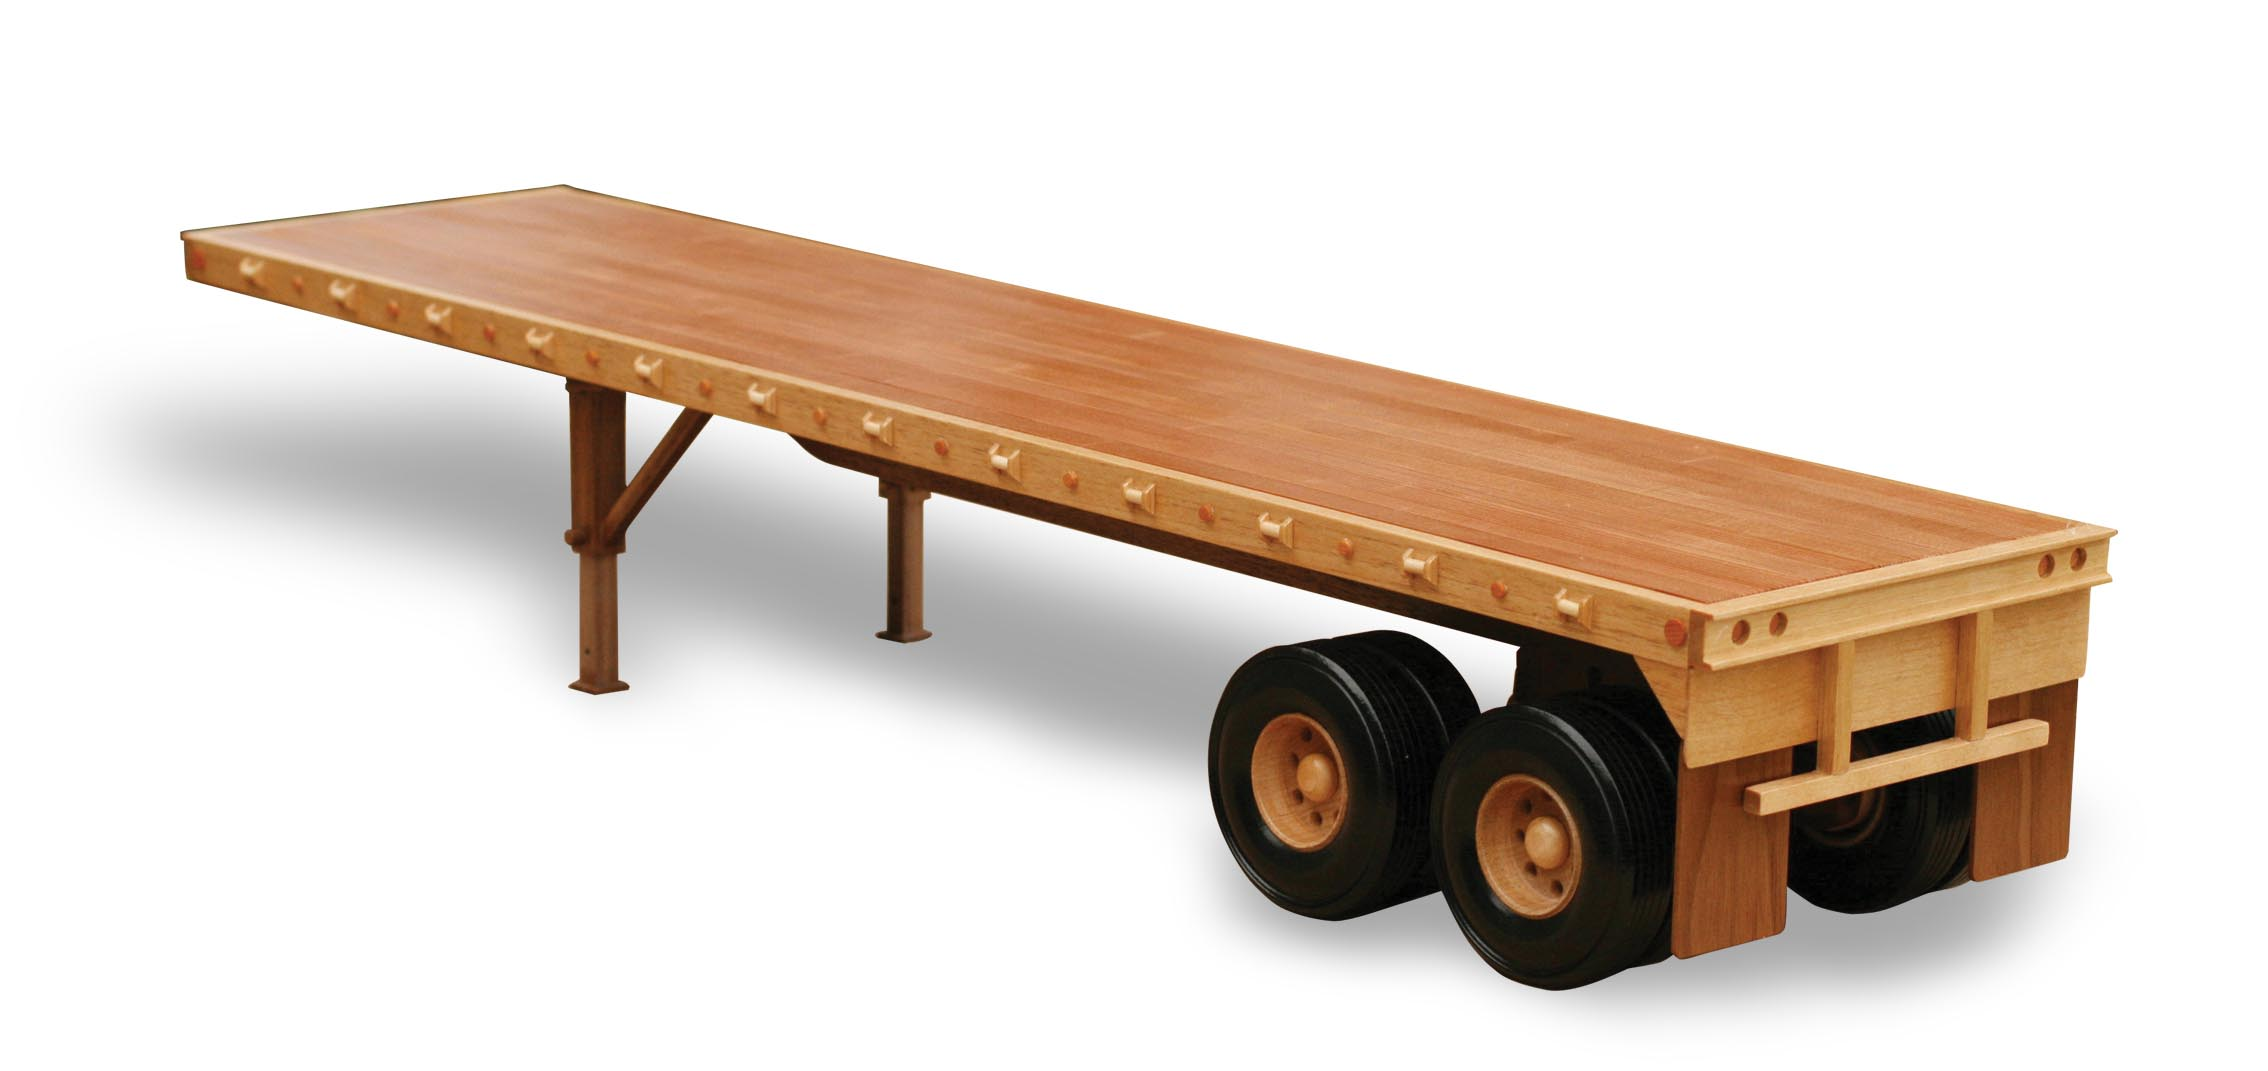 TJ109 - Flat Bed Trailer Pattern & Parts Kit.